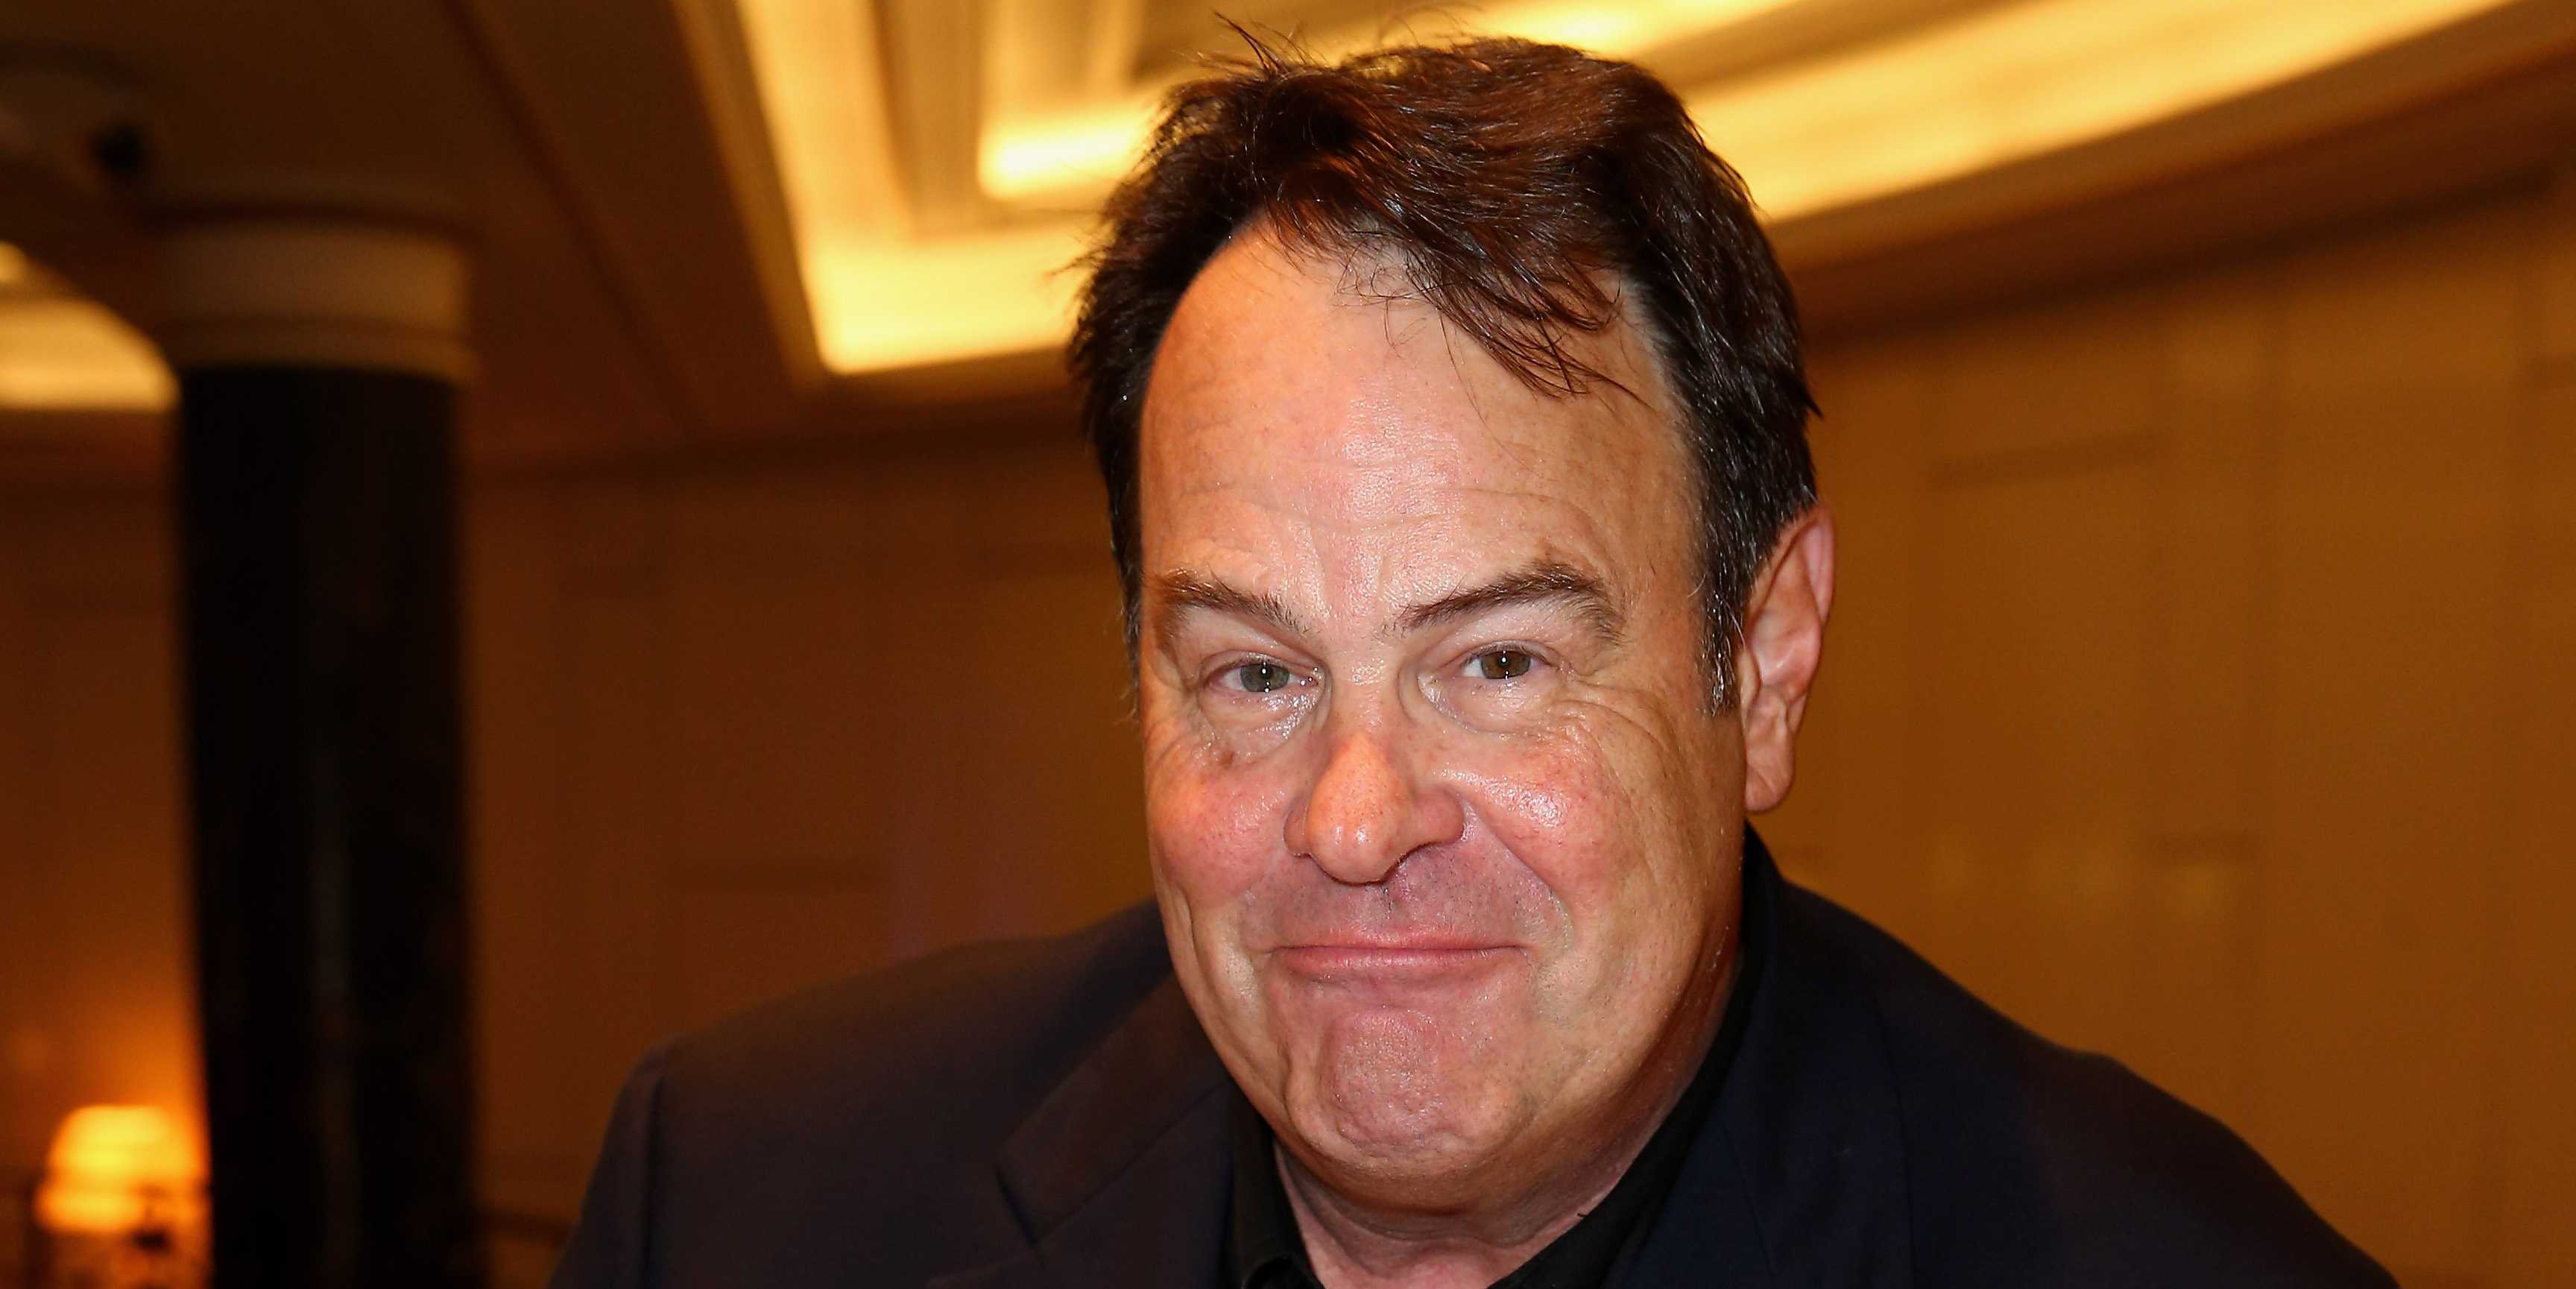 Dan Aykroyd Full hd wallpapers